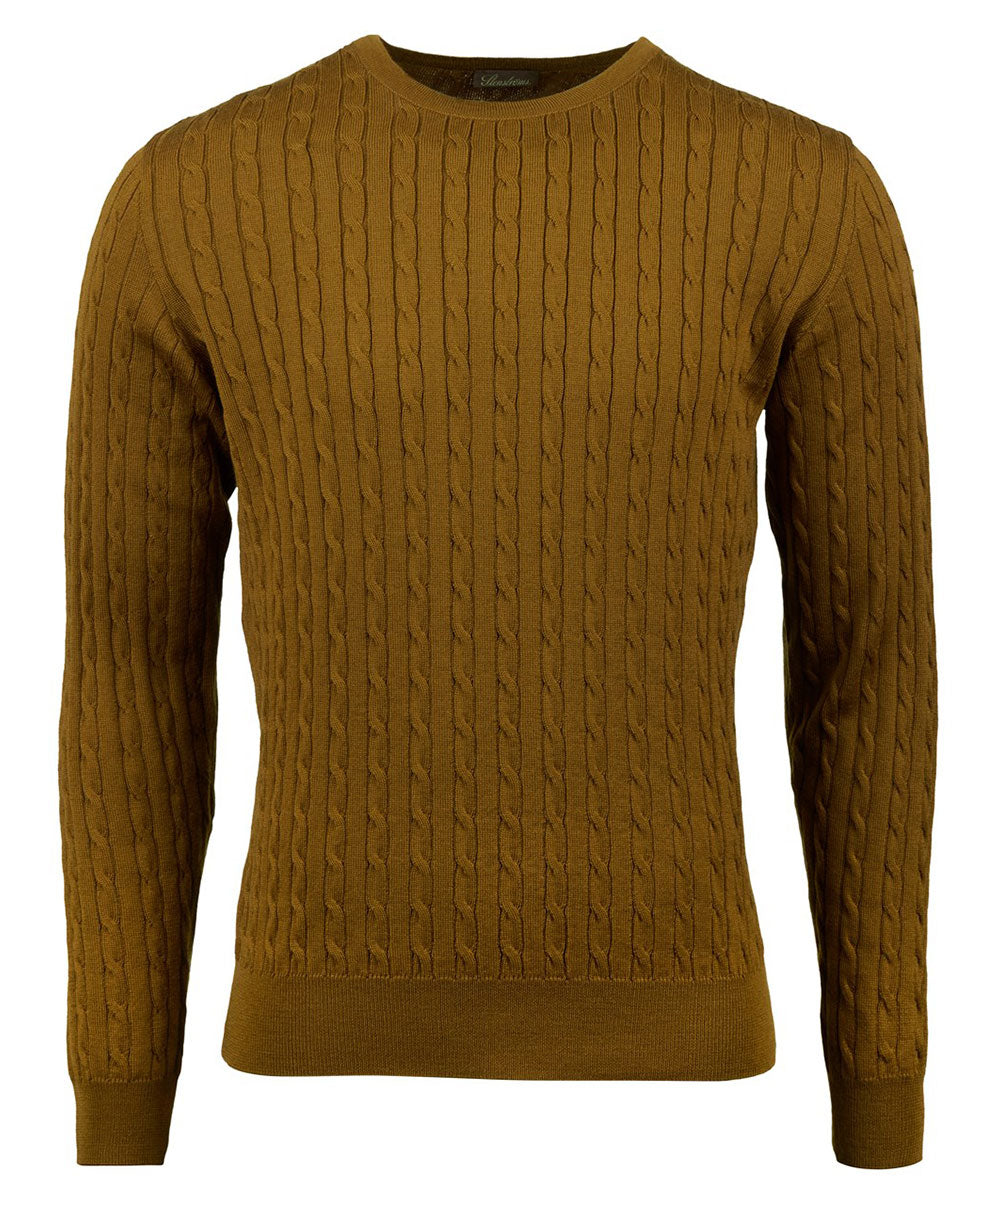 Mustard Cable Knit Crew Neck Sweater